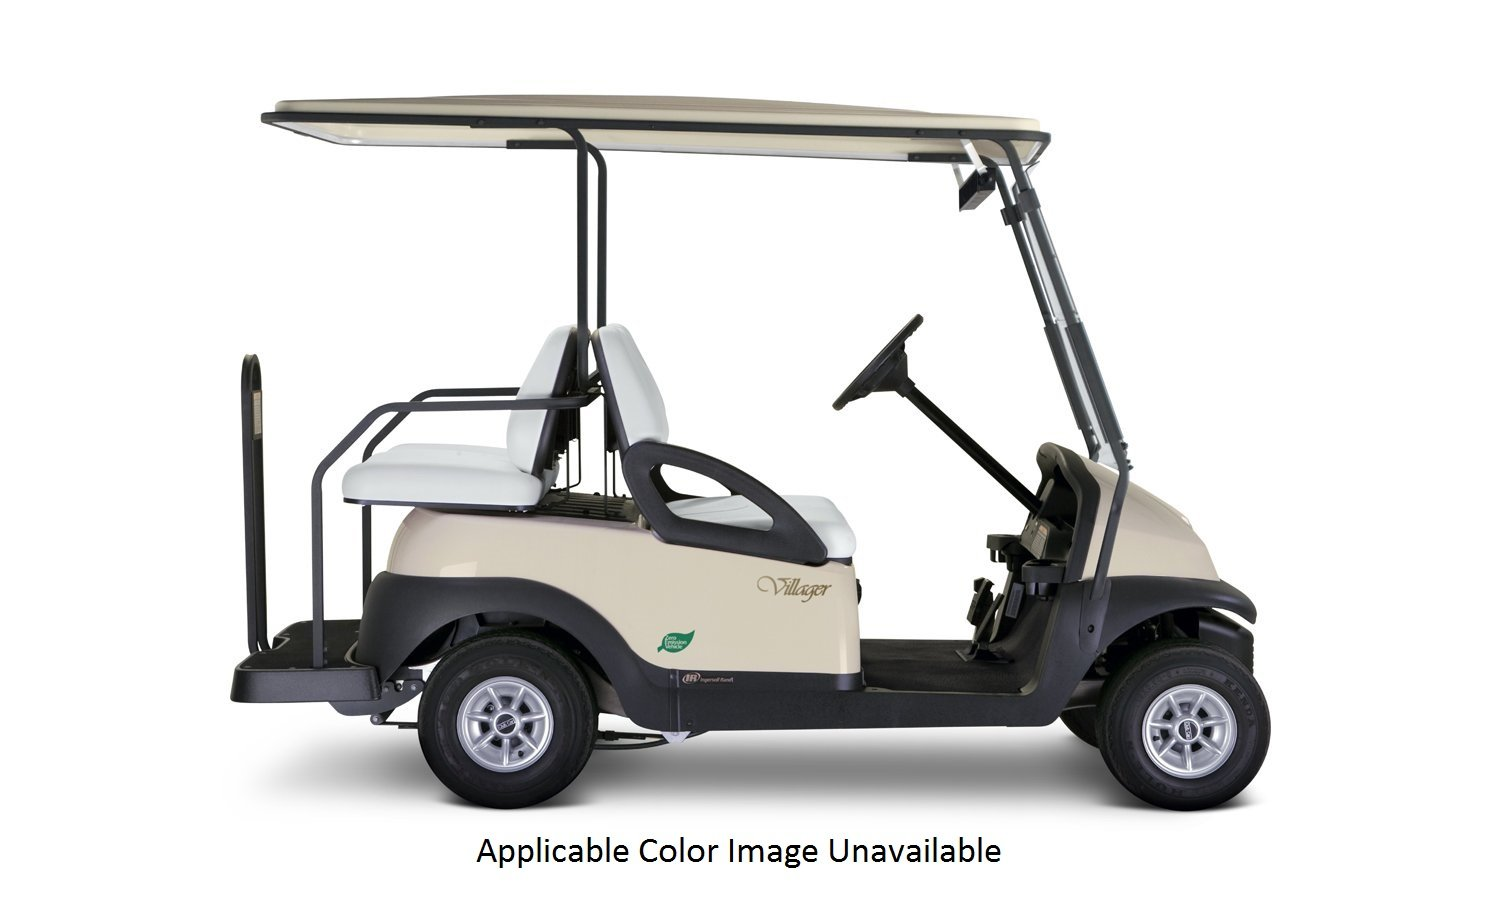 2017 Club Car Precedent i2 Villager 4 Gasoline in Gaylord, Michigan